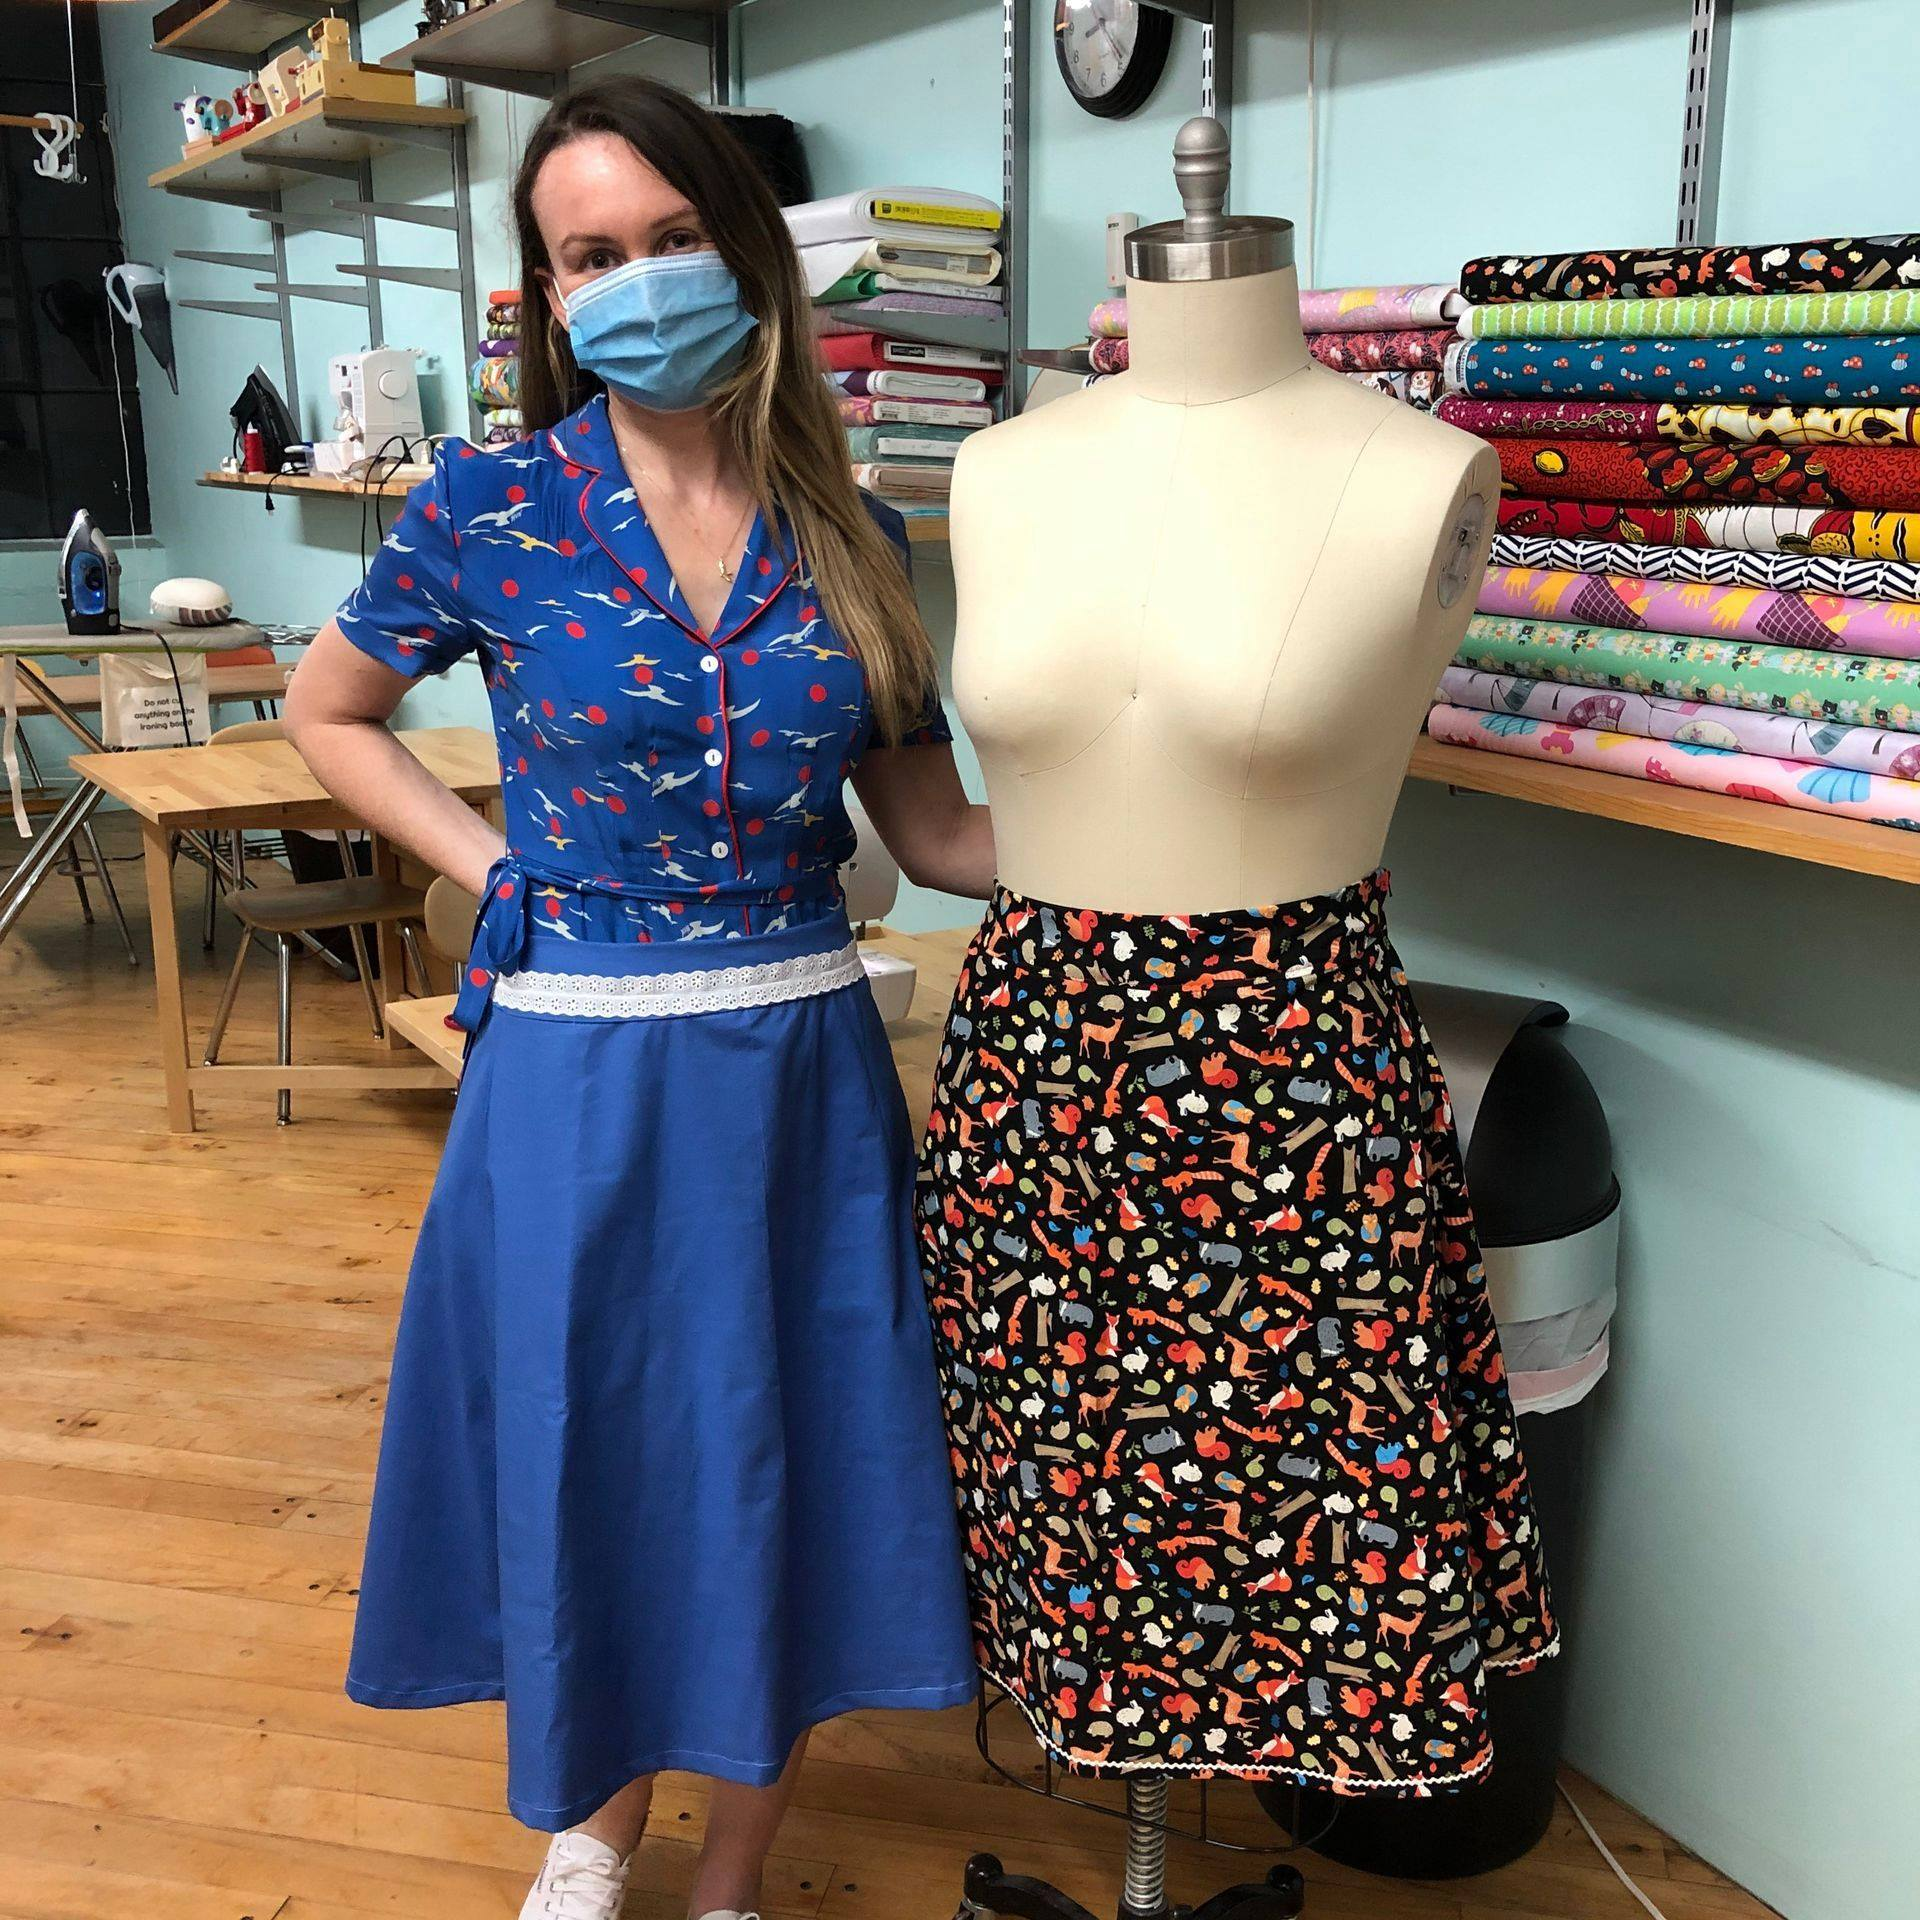 Virtual Sewing Classes | All Skill Levels Welcome | Make Quilts, Bags, Blazers, Pants, & More 3